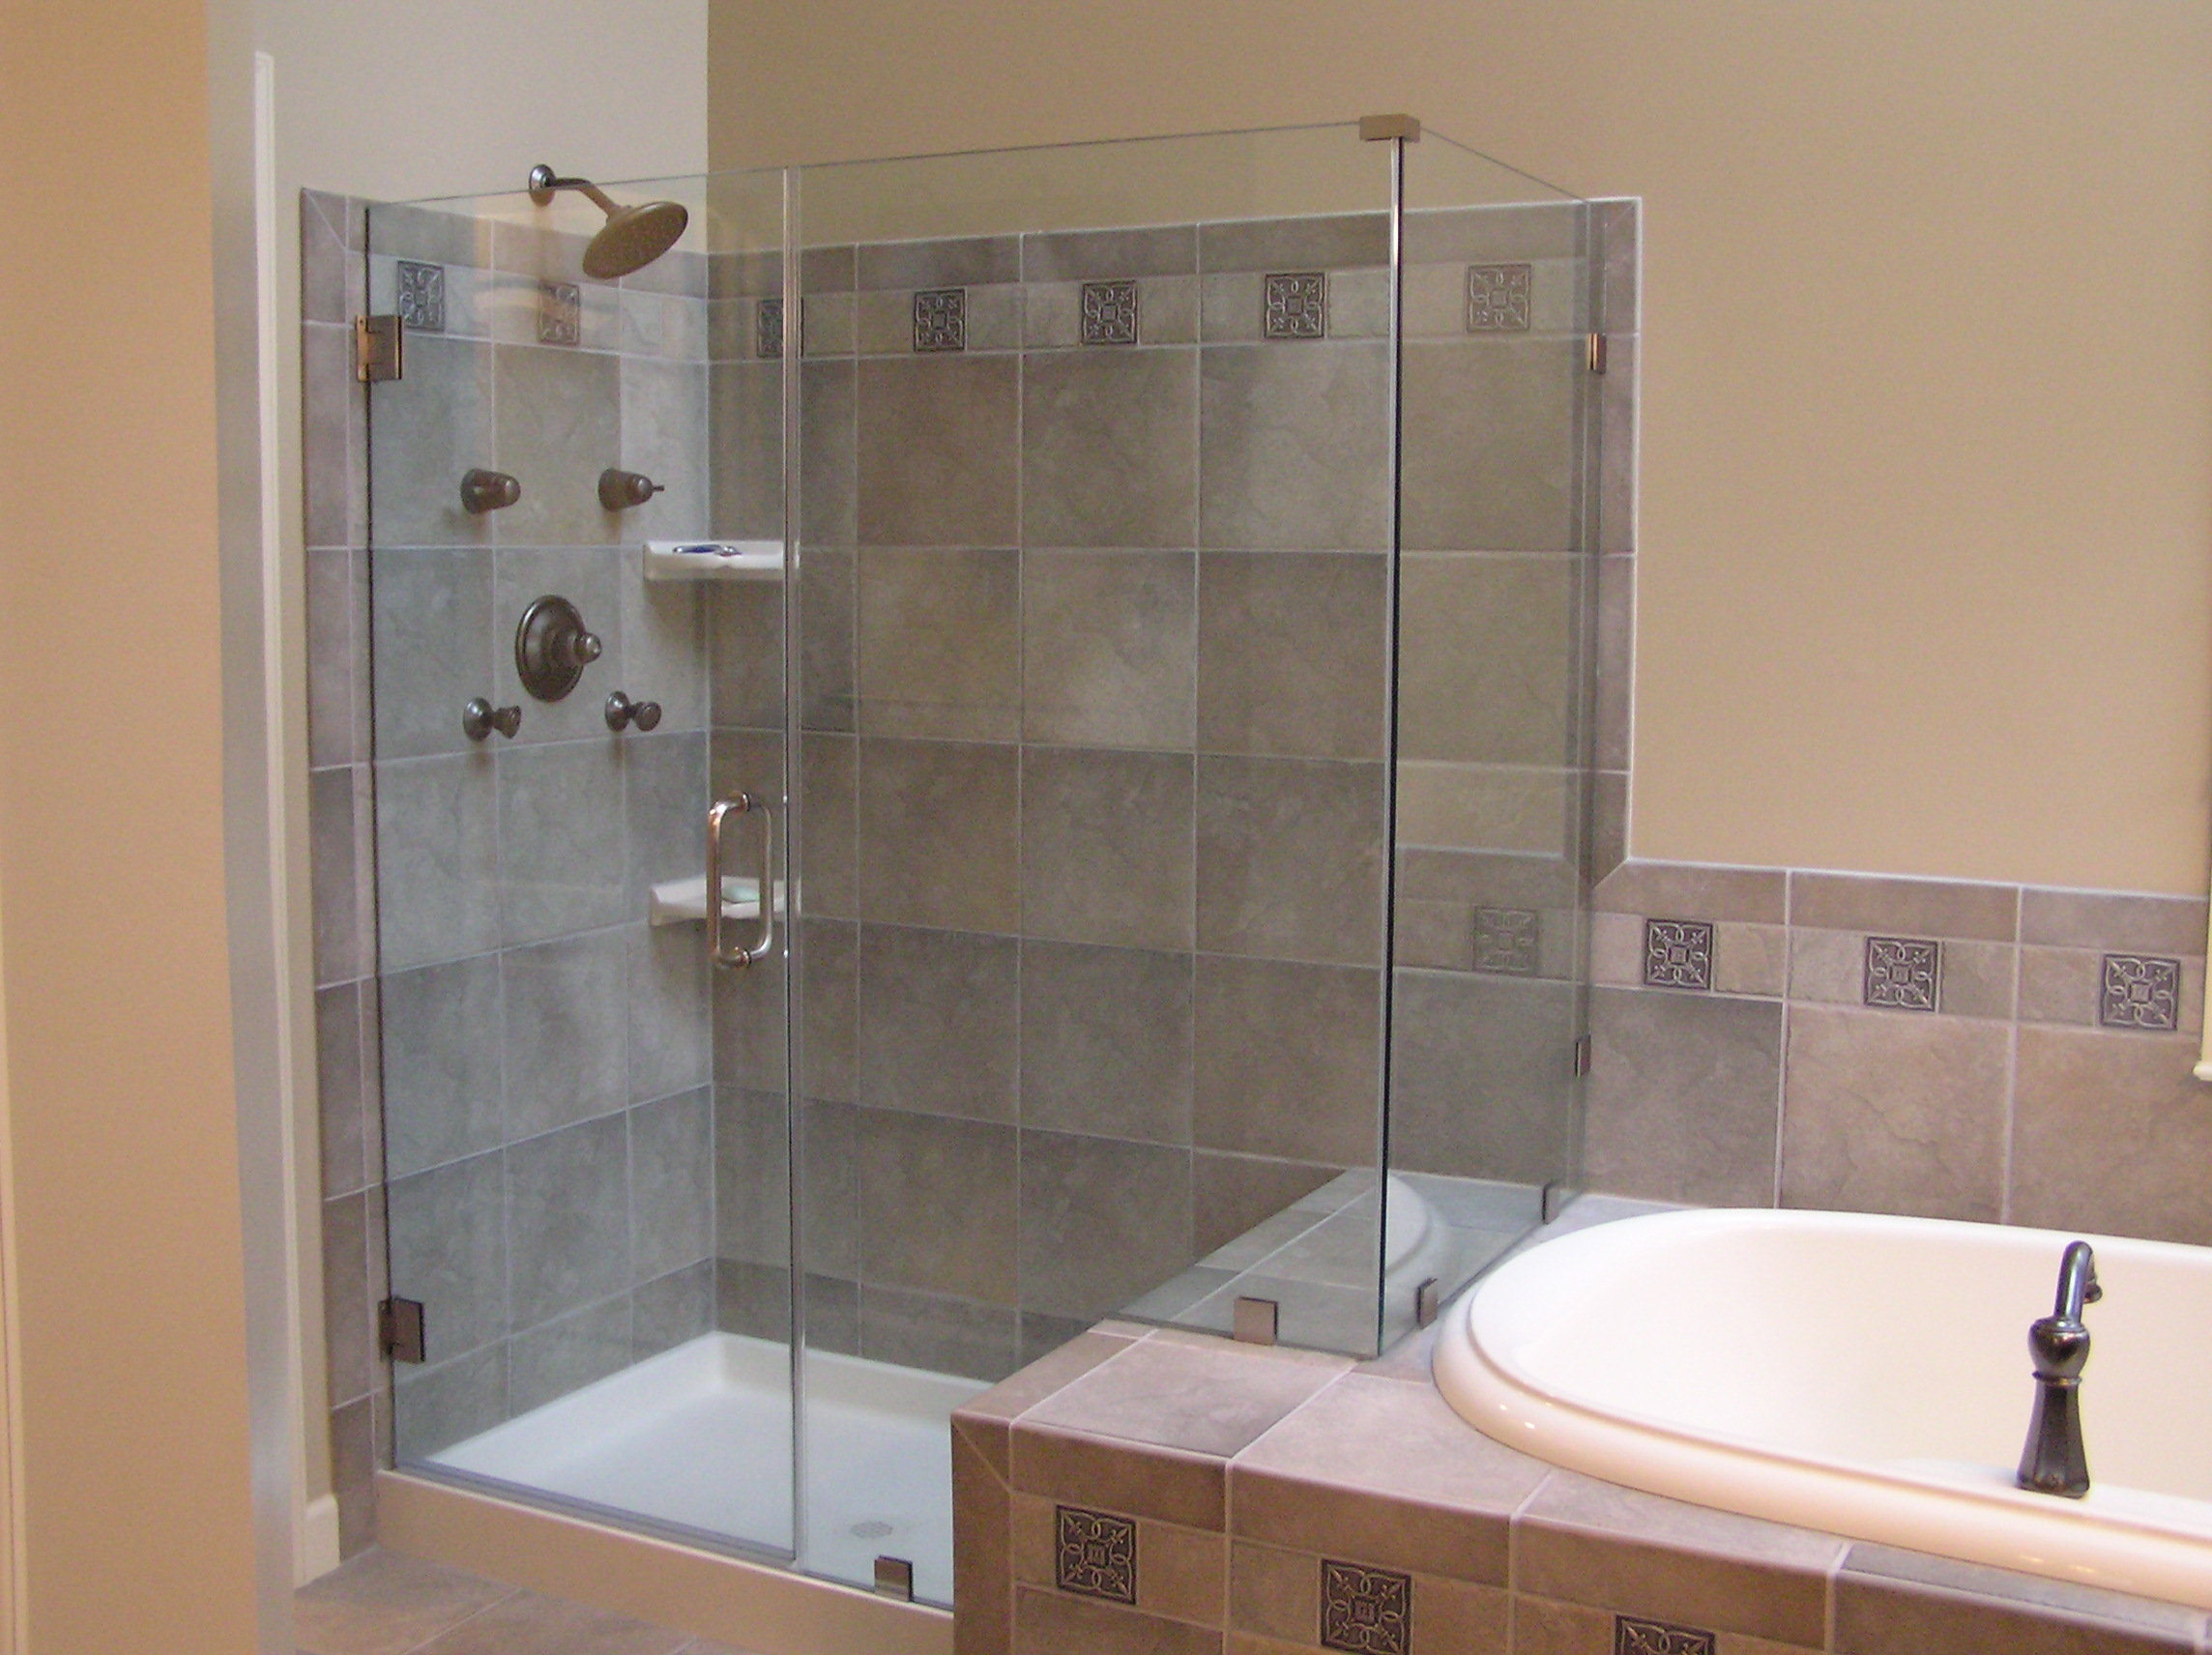 Remodel Bathroom Shower Cost how much is an average bathroom remodel. bathroom average bathroom